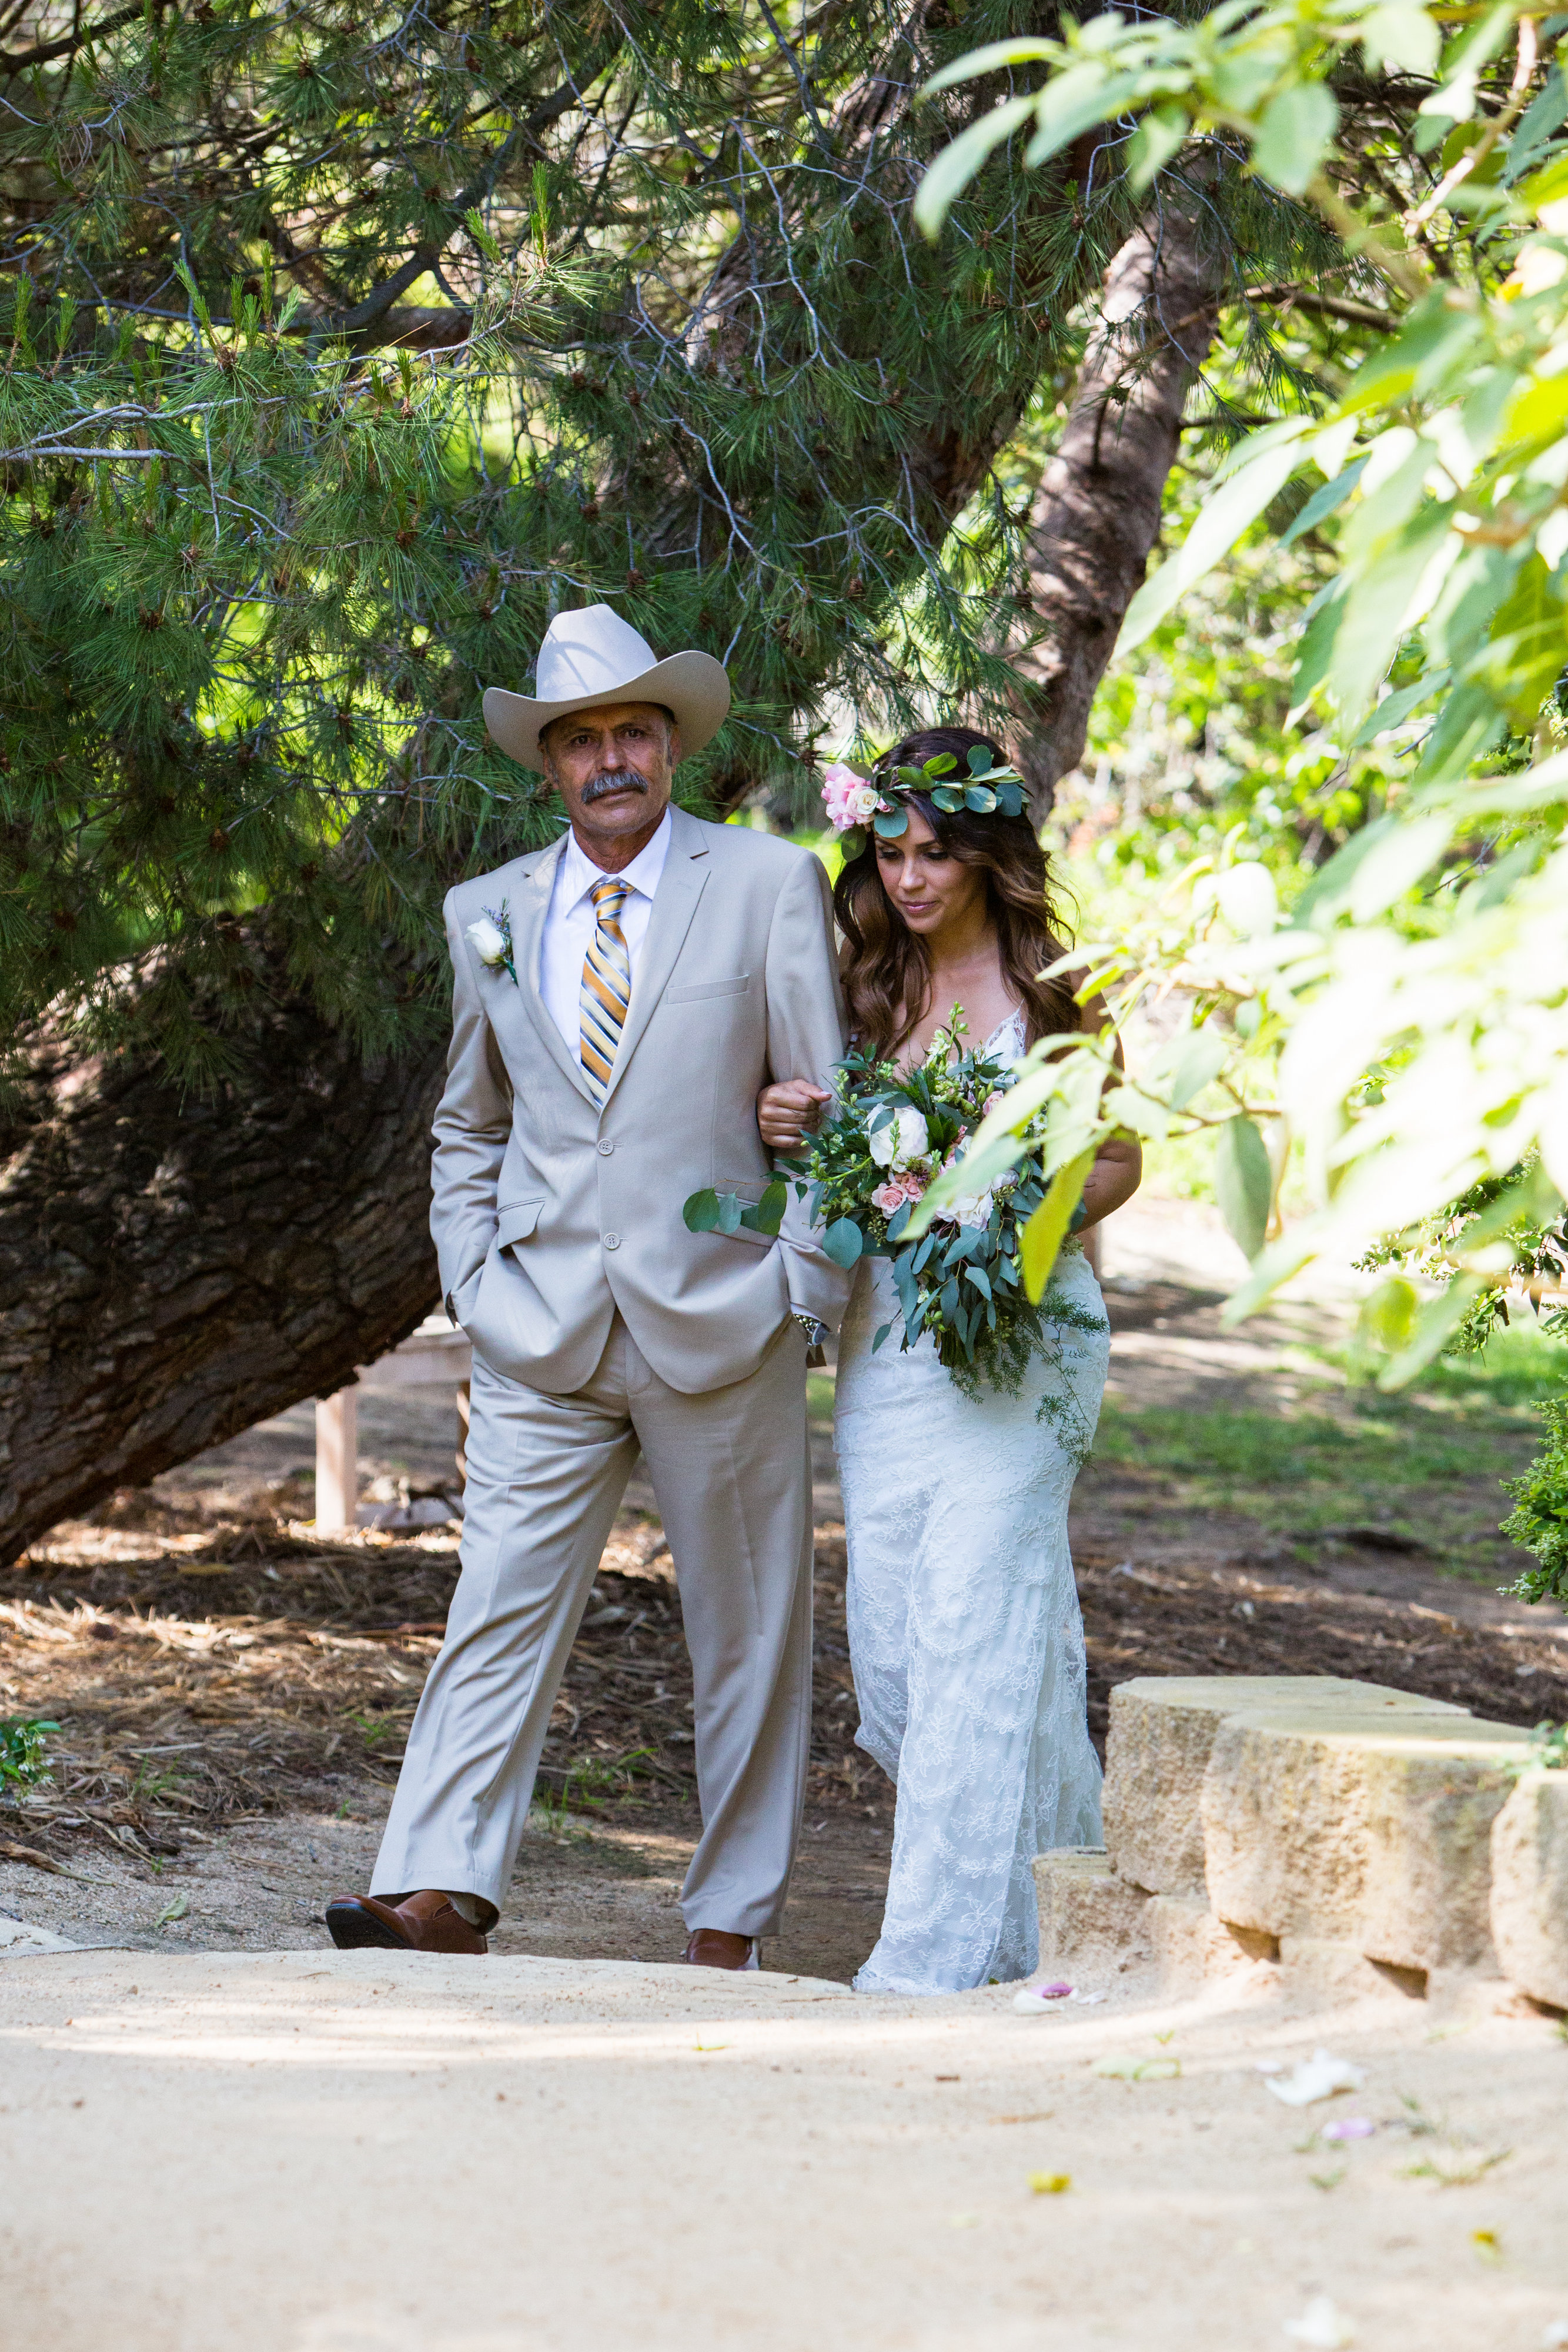 cowboy hat father with flower crown bride